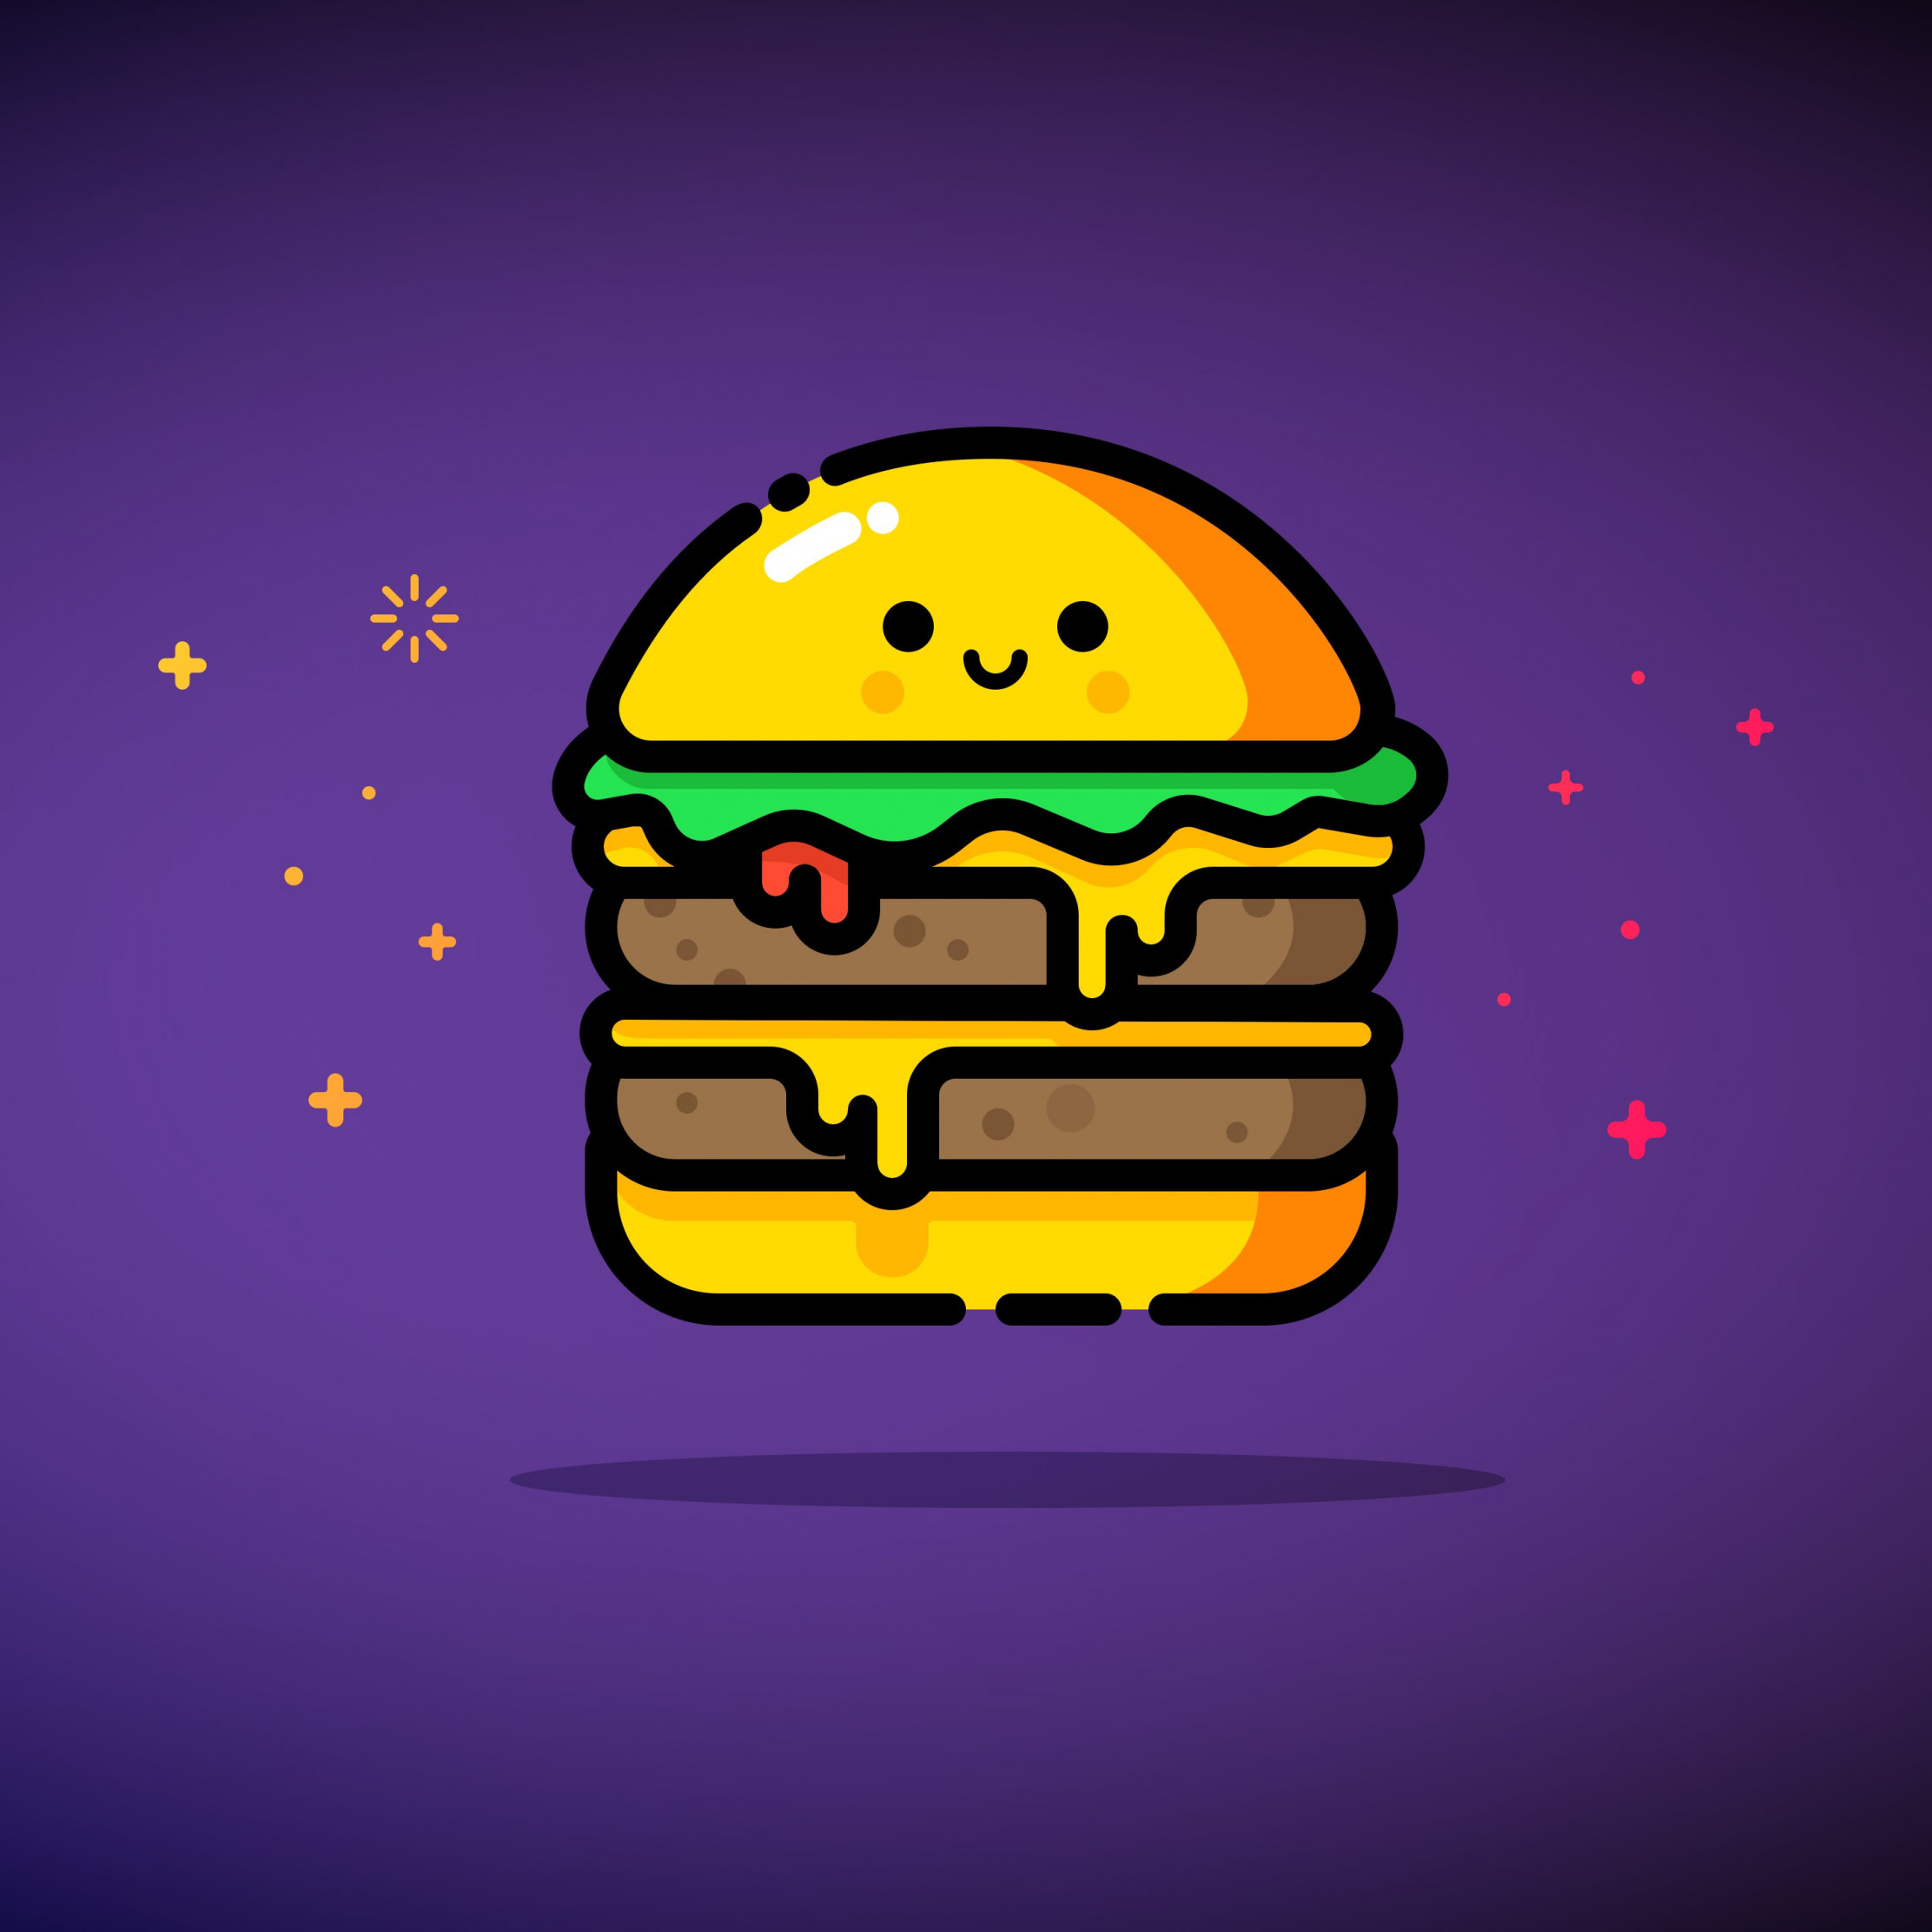 Double cheese wallpaper 2224x2224